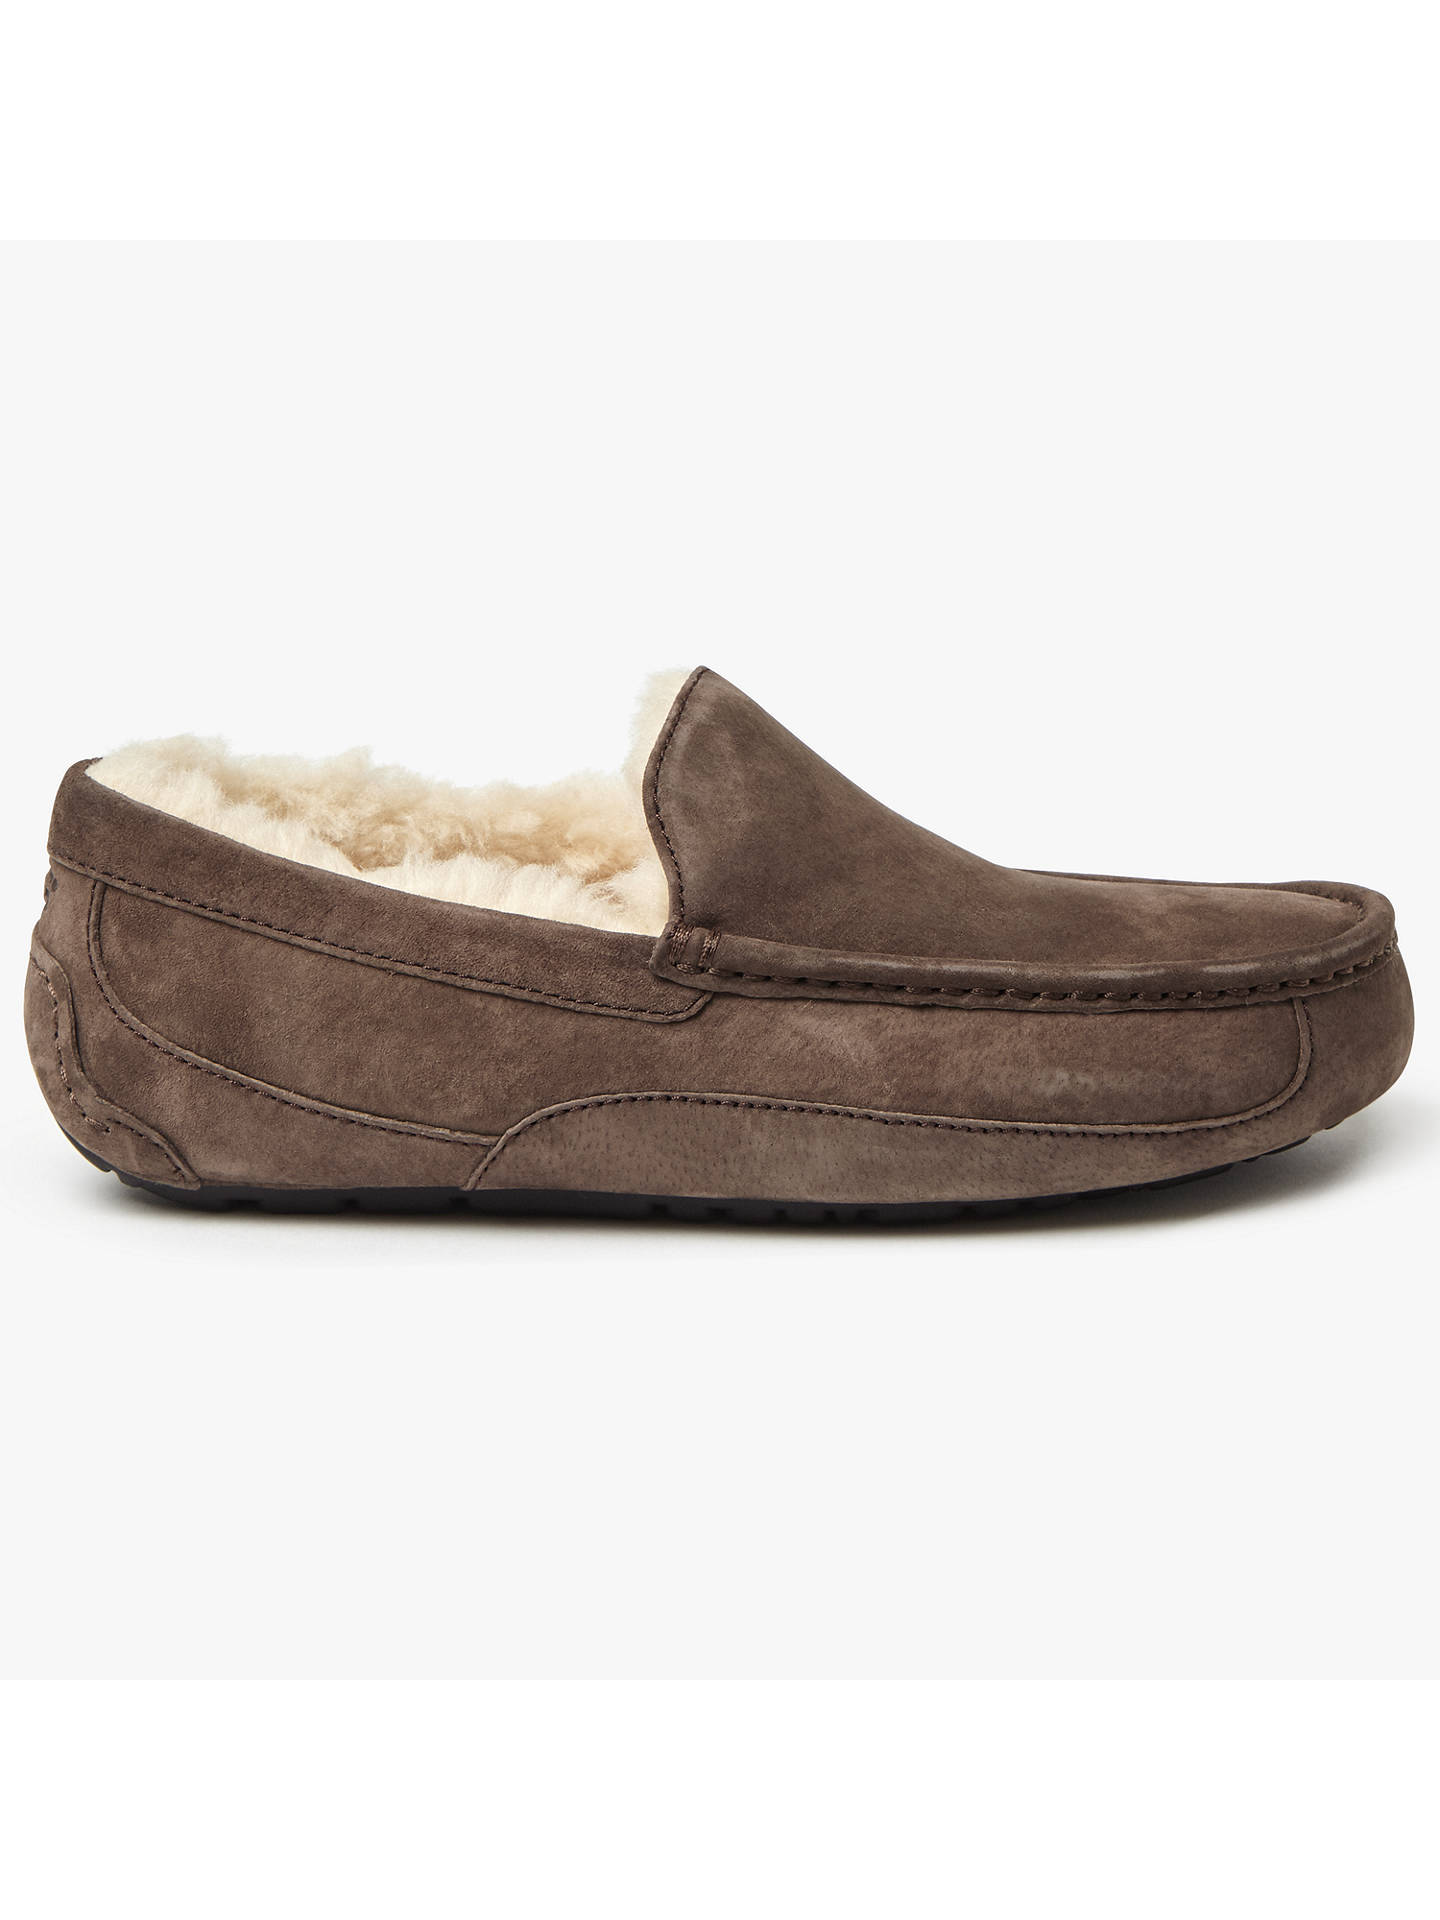 Buy UGG Ascot Moccasin Suede Slippers, Espresso, 7 Online at johnlewis.com